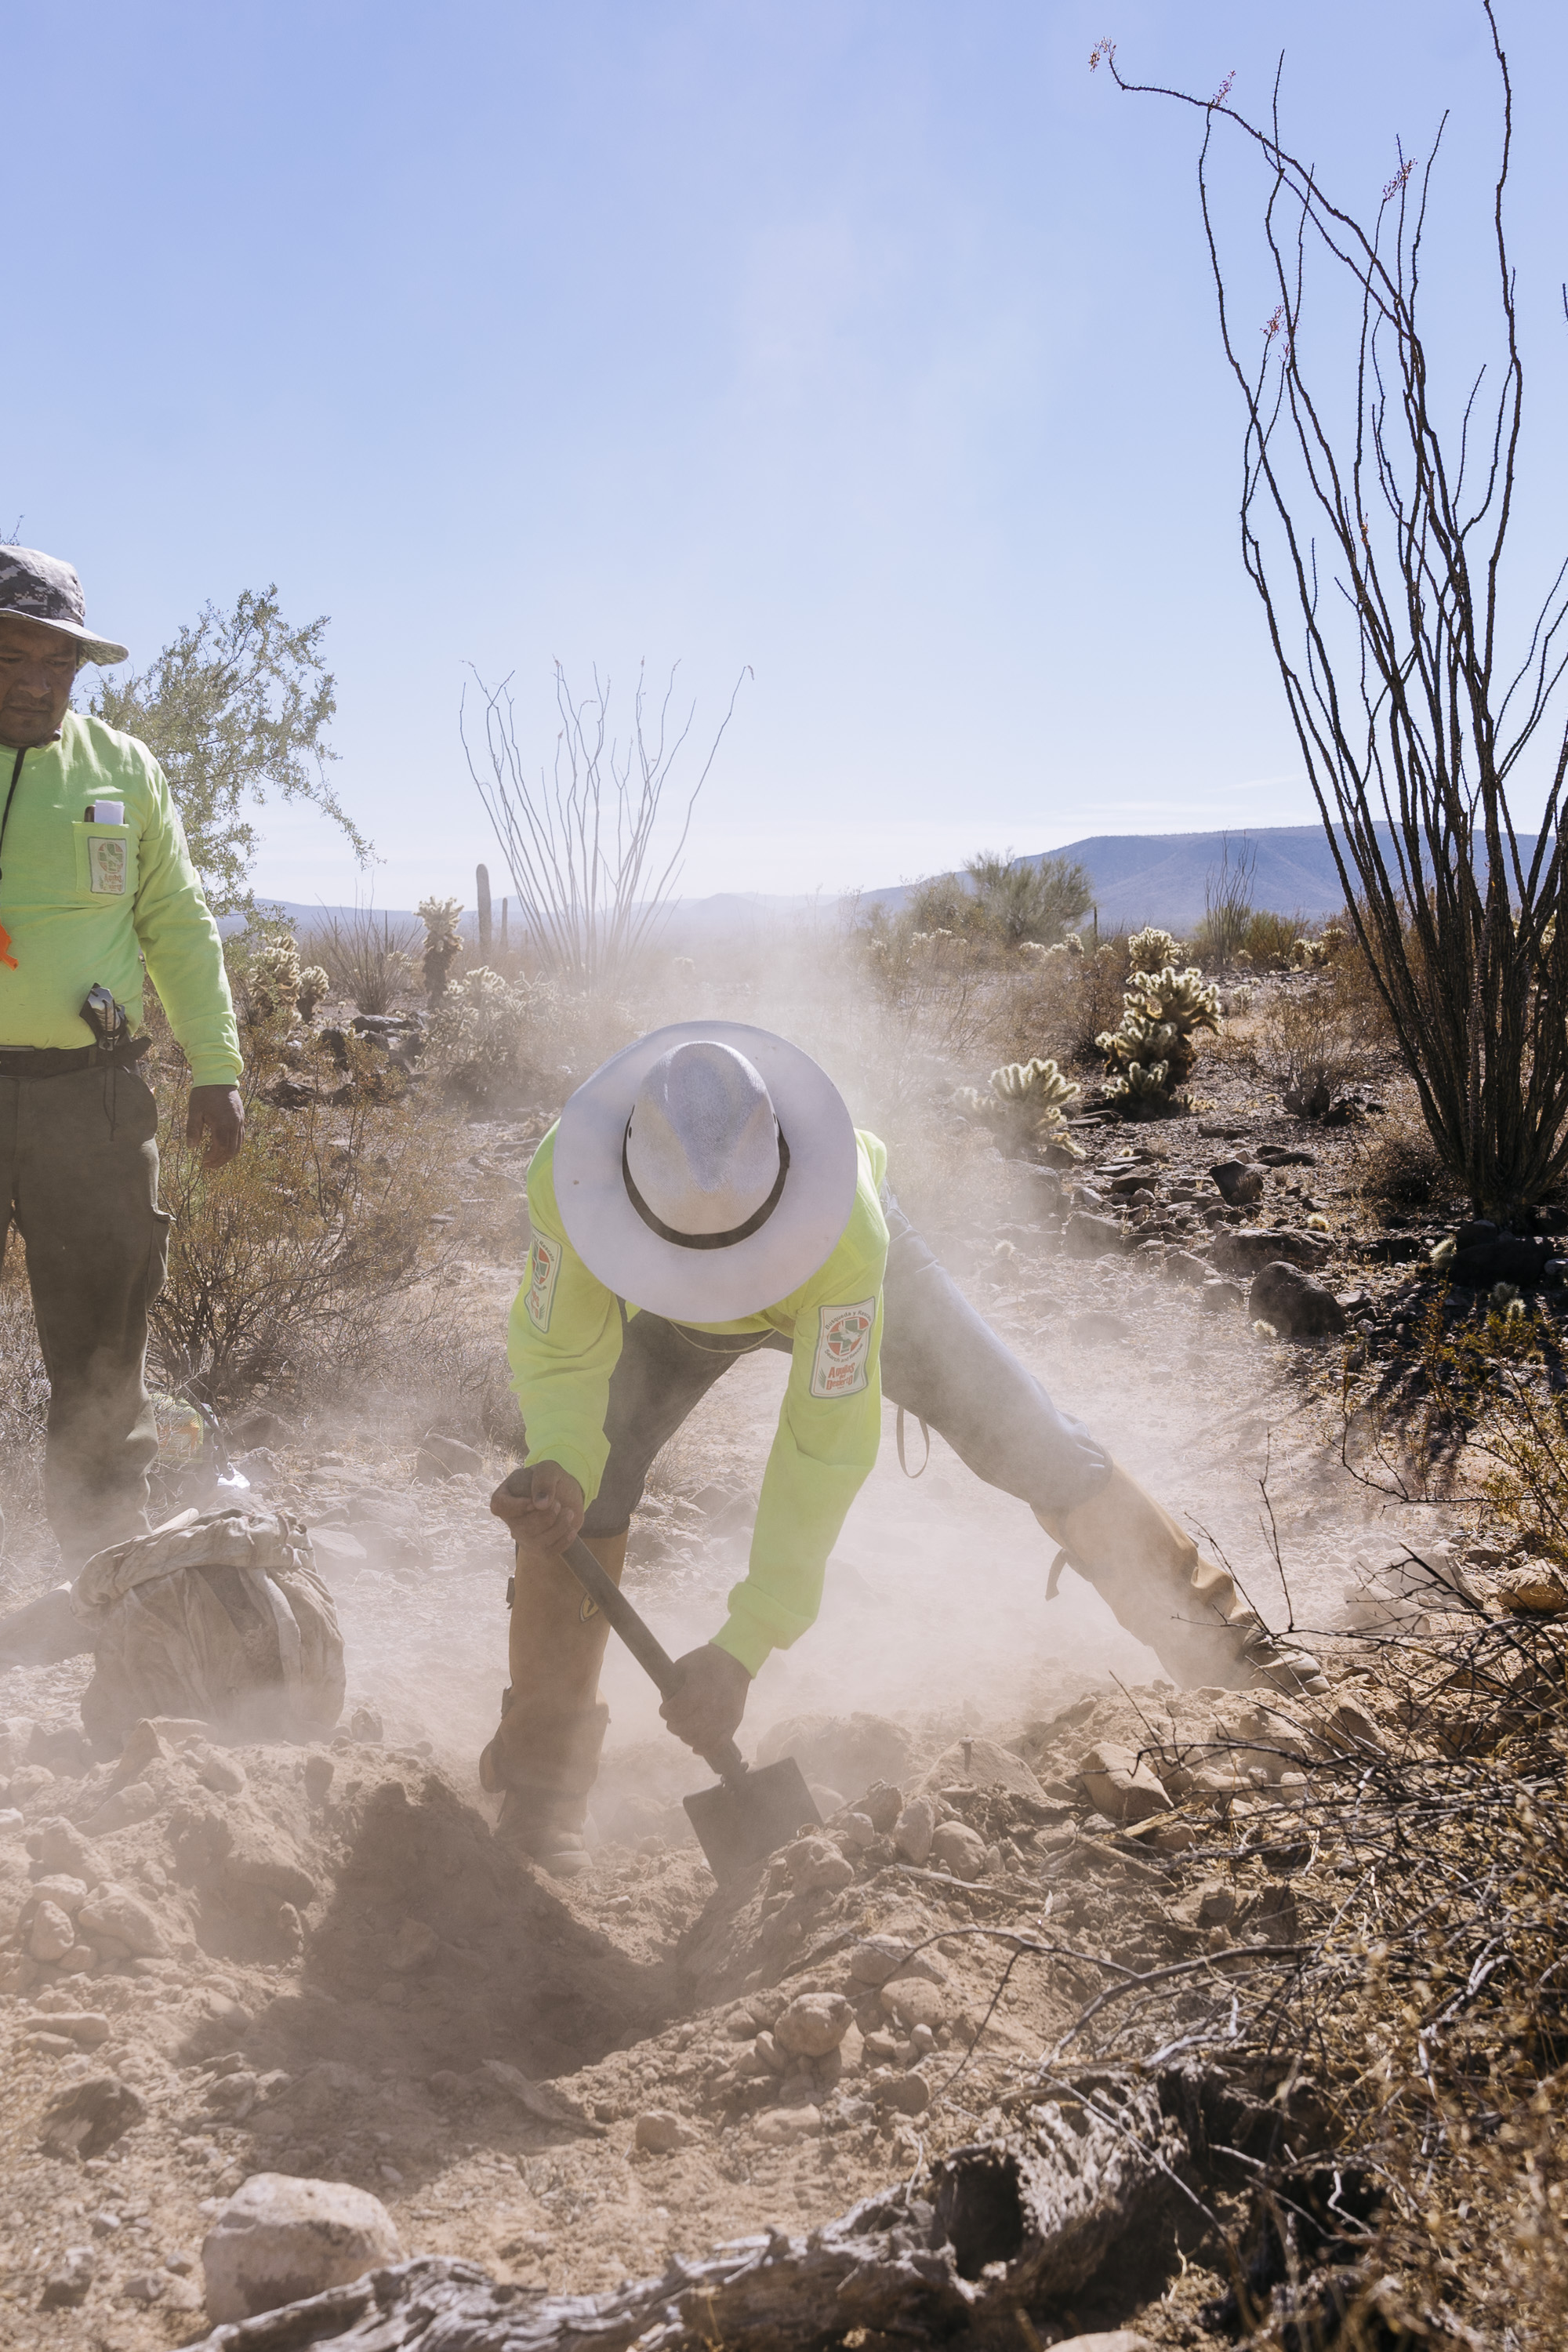 IMAGE CAPTION:  Members of Aguilas Del Desierto dig in the Sonoran Desert where they suspect the body of a migrant has been buried in a shallow grave. Most migrants who die crossing this treacherous desert have been left behind by the their guides and quickly succumb to dehydration.